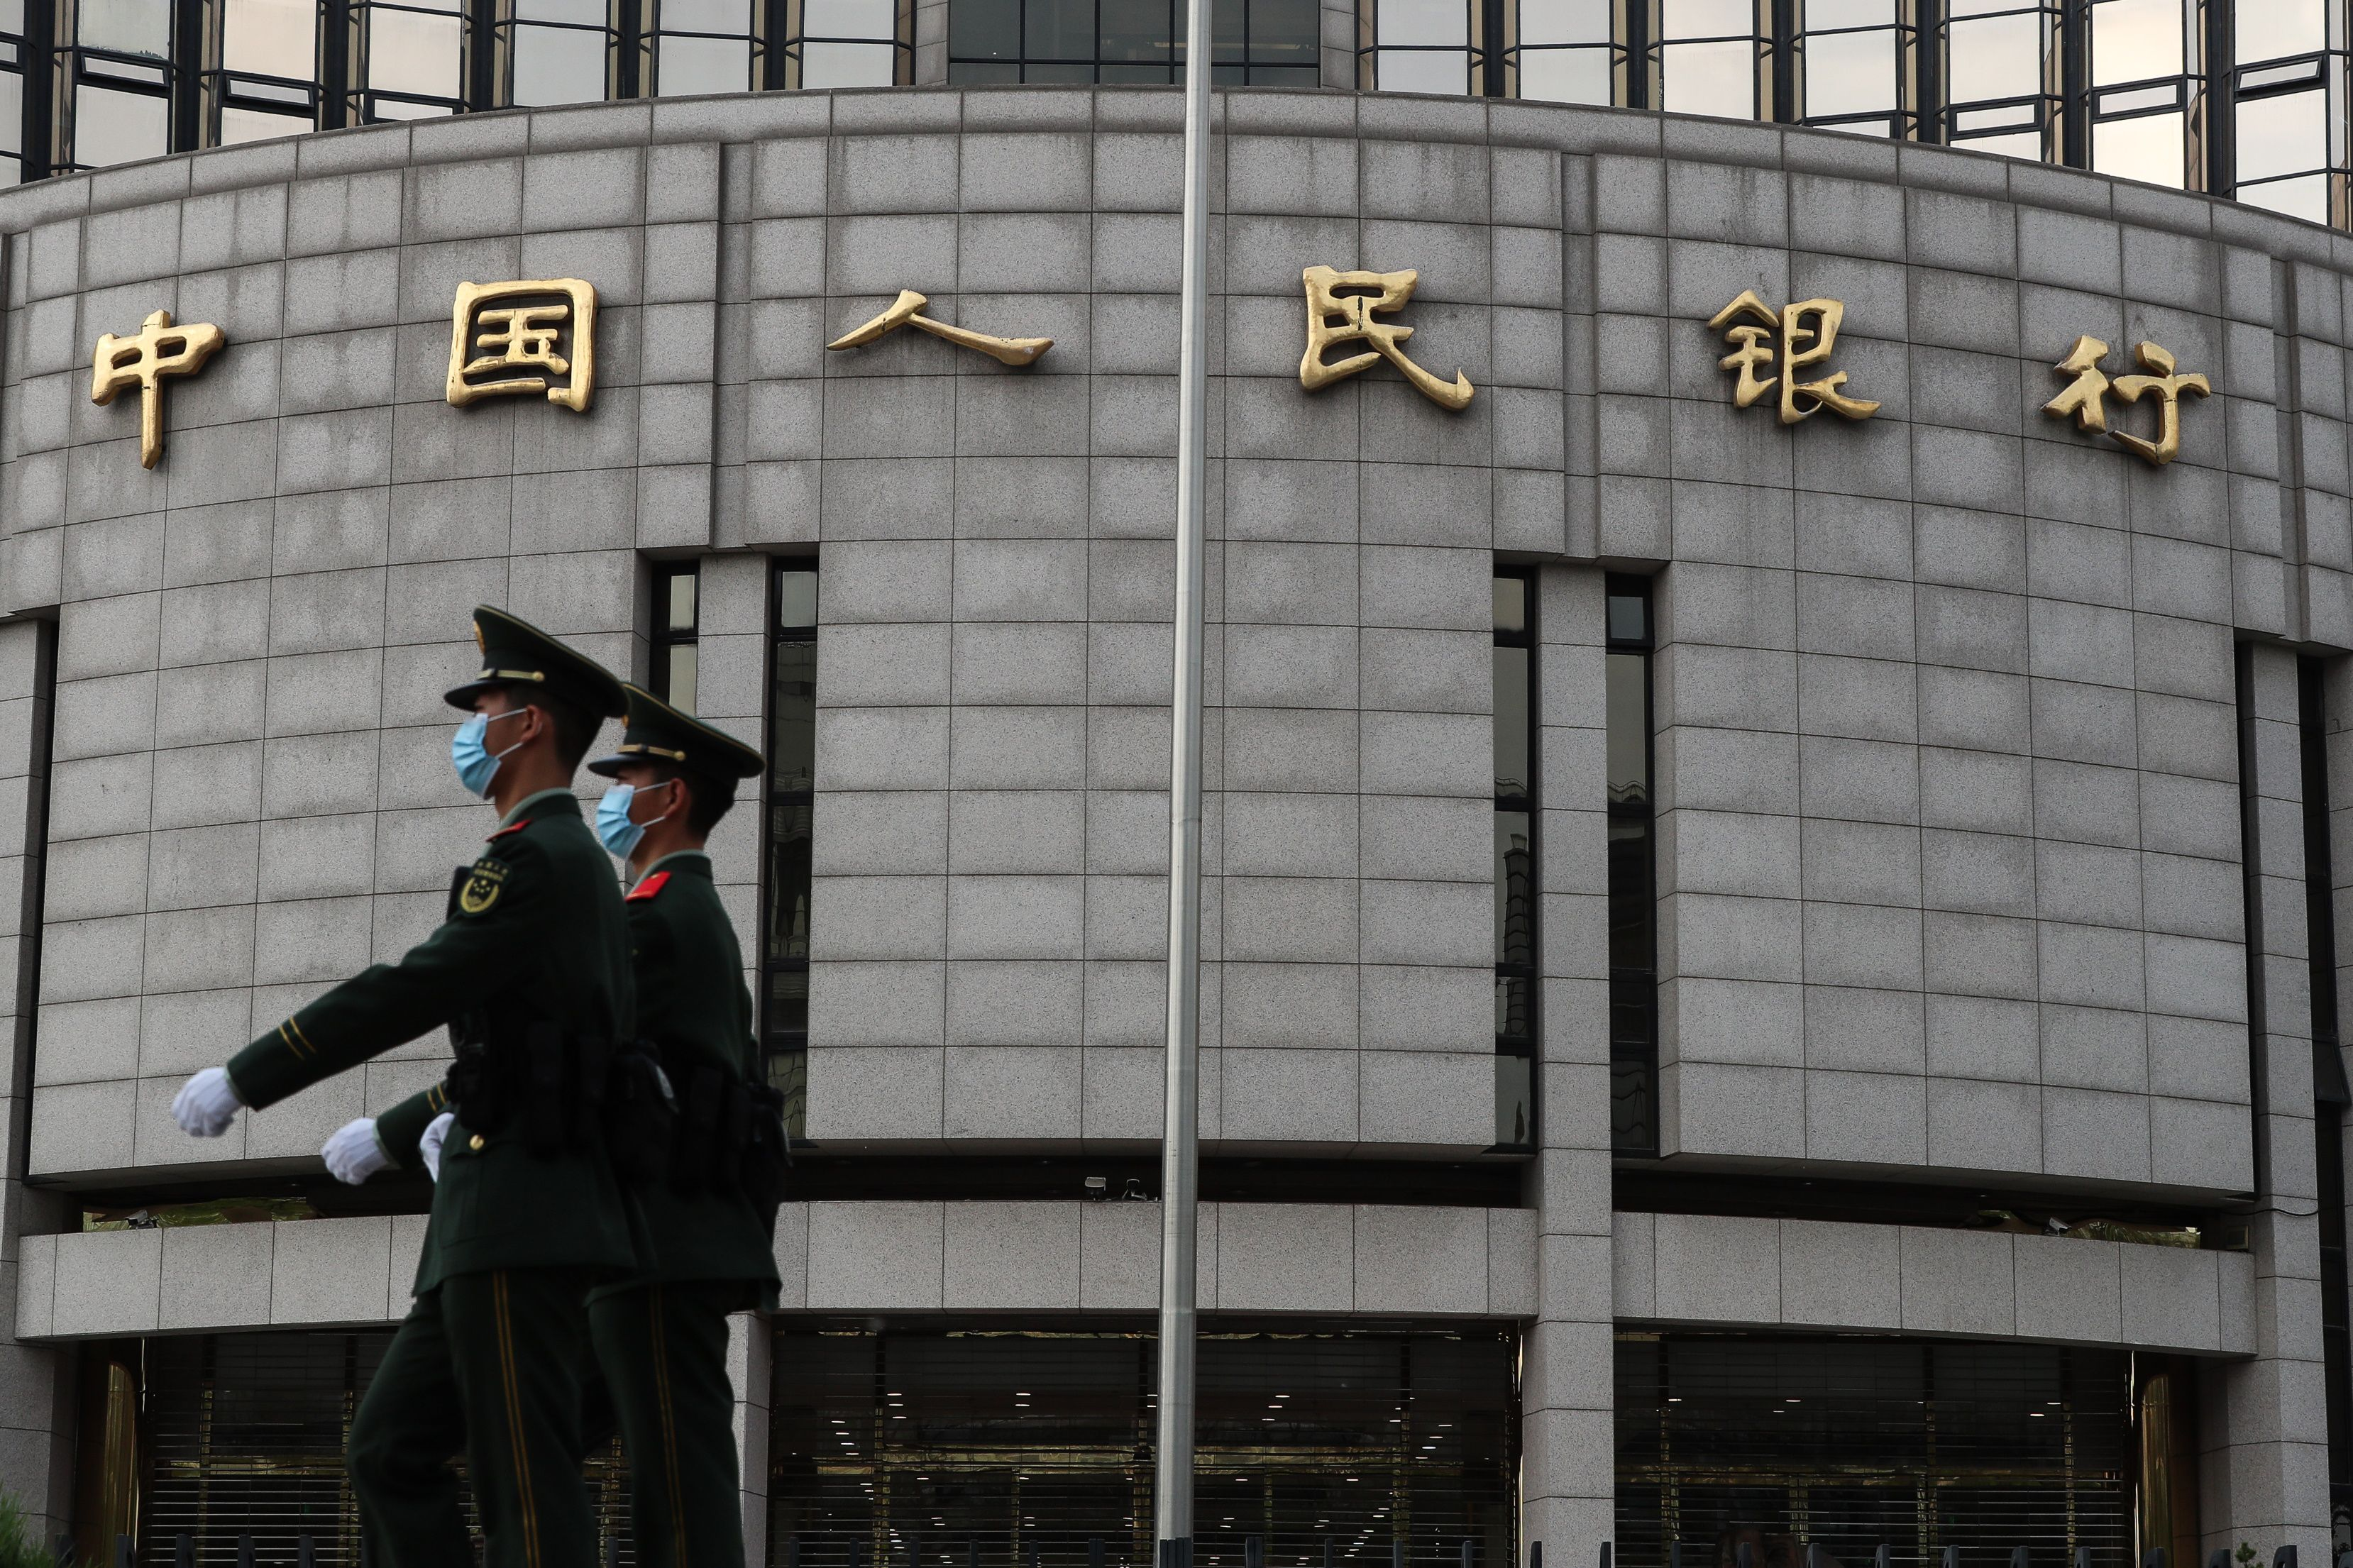 People's Bank of China (Emmanuel Wong/Getty Images)